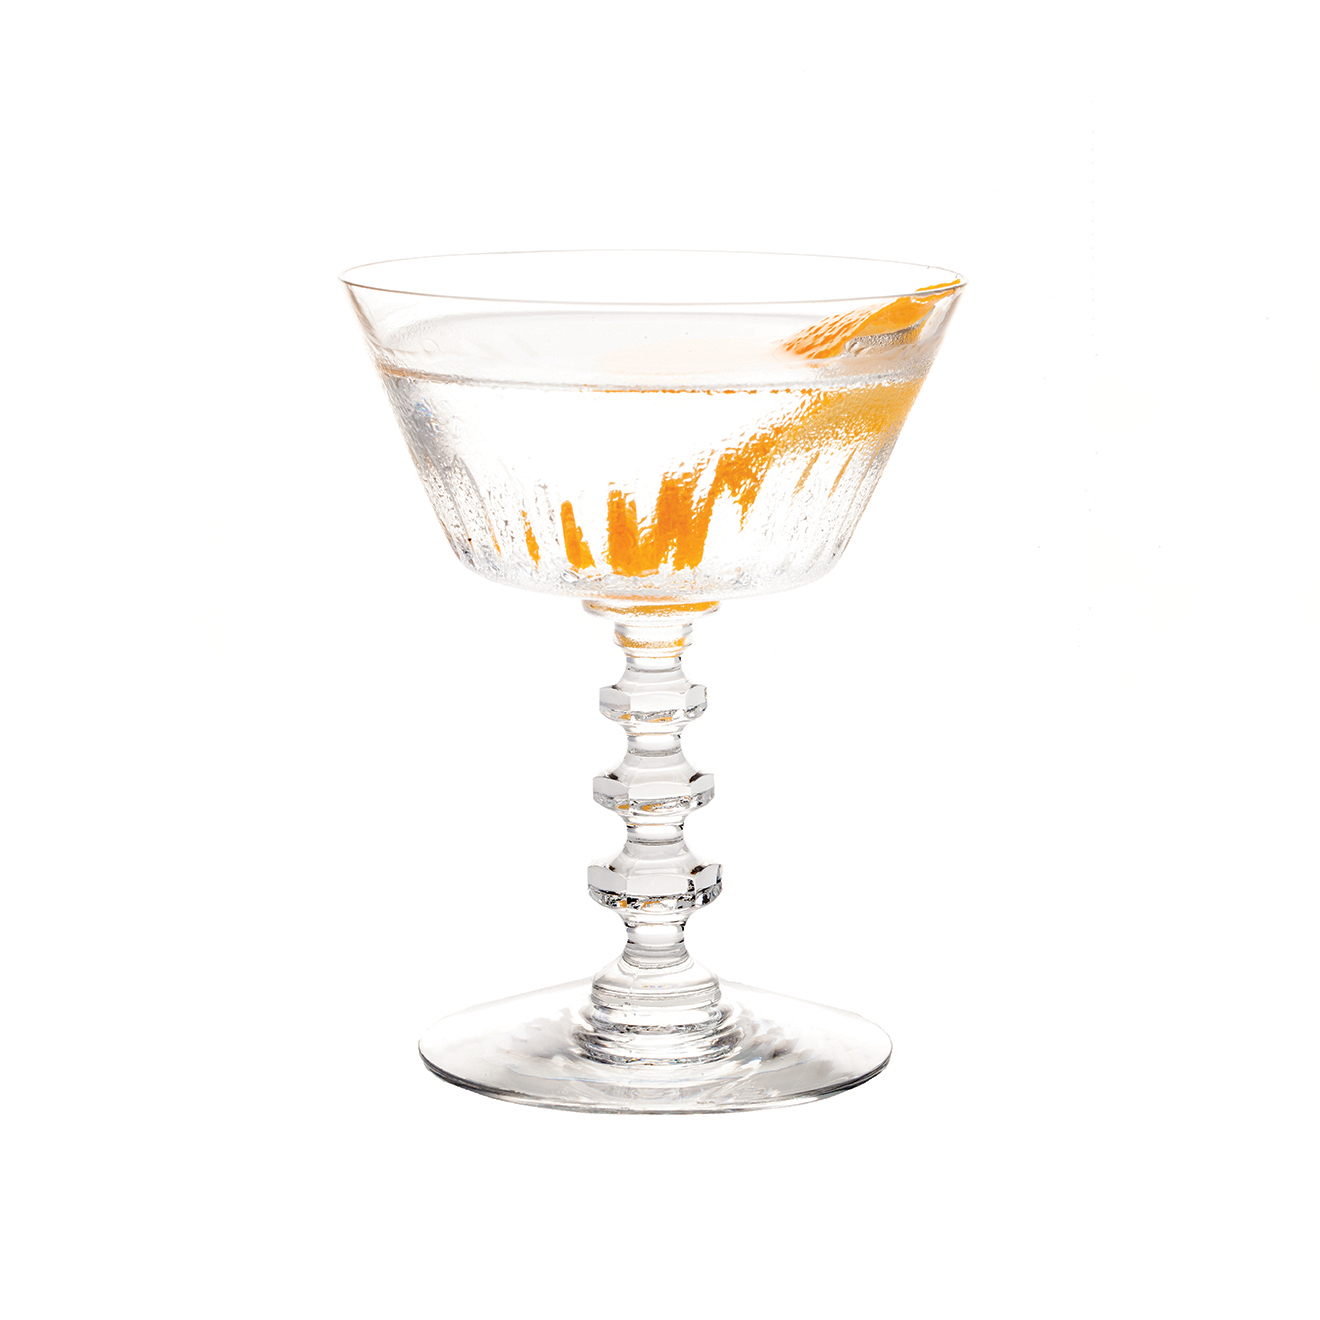 THE KLEO-PATRA JONES - 1 part KLEOS Mastiha Spirit2 parts gin                                          3 drops orange bittersStir all ingredients over ice for dilution.Strain into a chilled coupette.Garnish with an expressed orange peel.                       For the Bond girls and the men who love them.